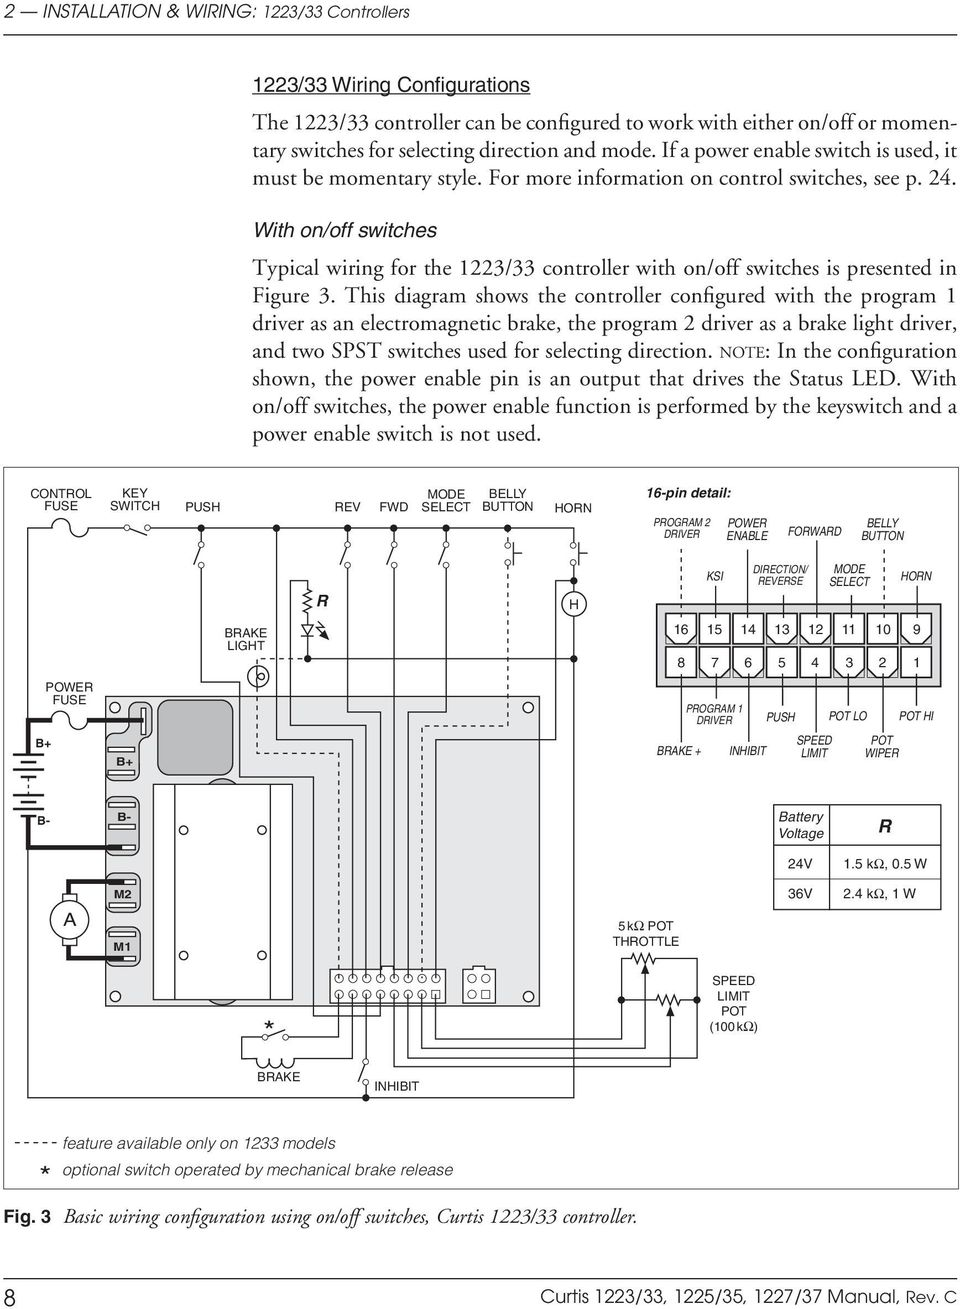 curtis instruments, inc multimode motor controllers pdf hubbell wiring diagrams curtis instruments wiring diagrams #8